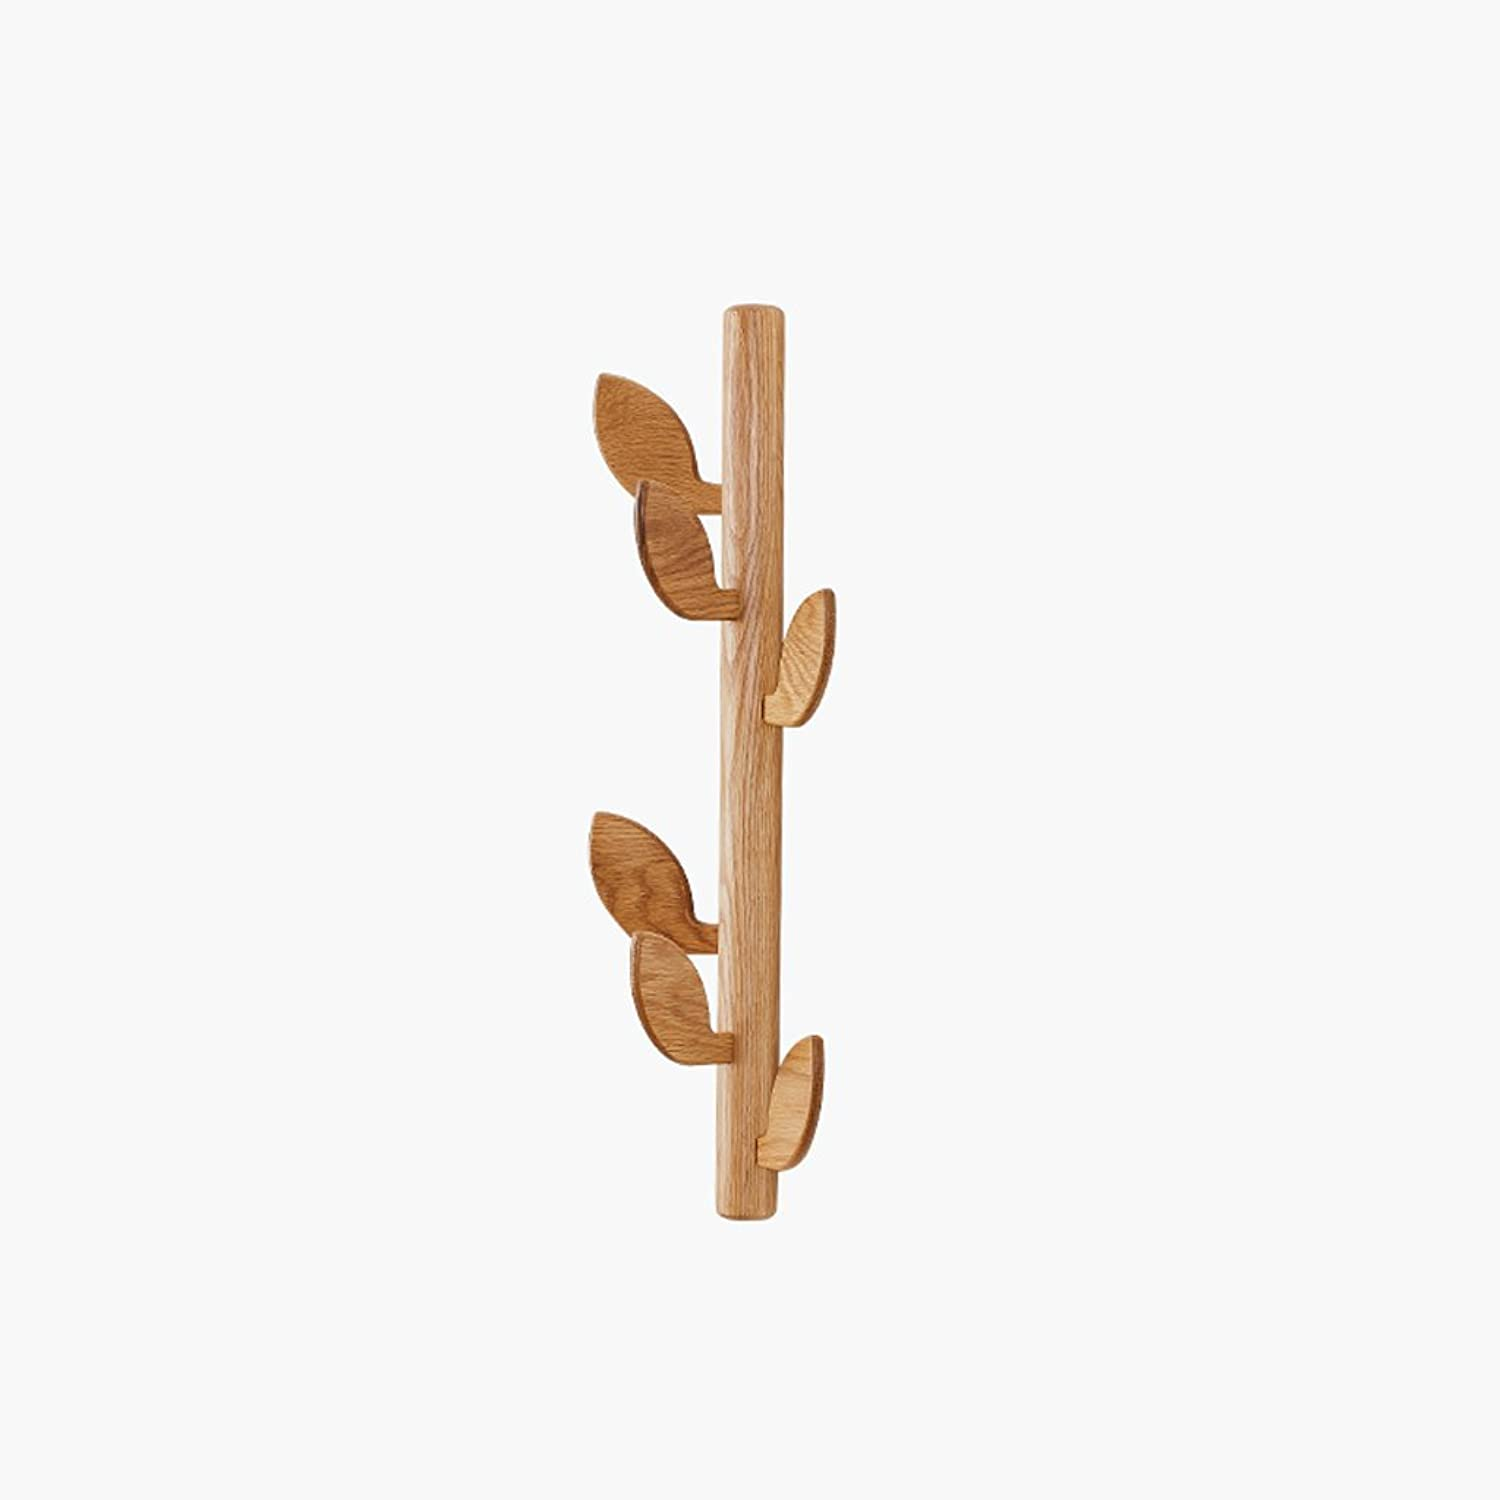 Yxsd Solid Wood Foyer Wall Coat Rack, Creative Leaves Living Room Decoration Wall Hanging Shelf 6 (pcs) 58  20cm (color   A)